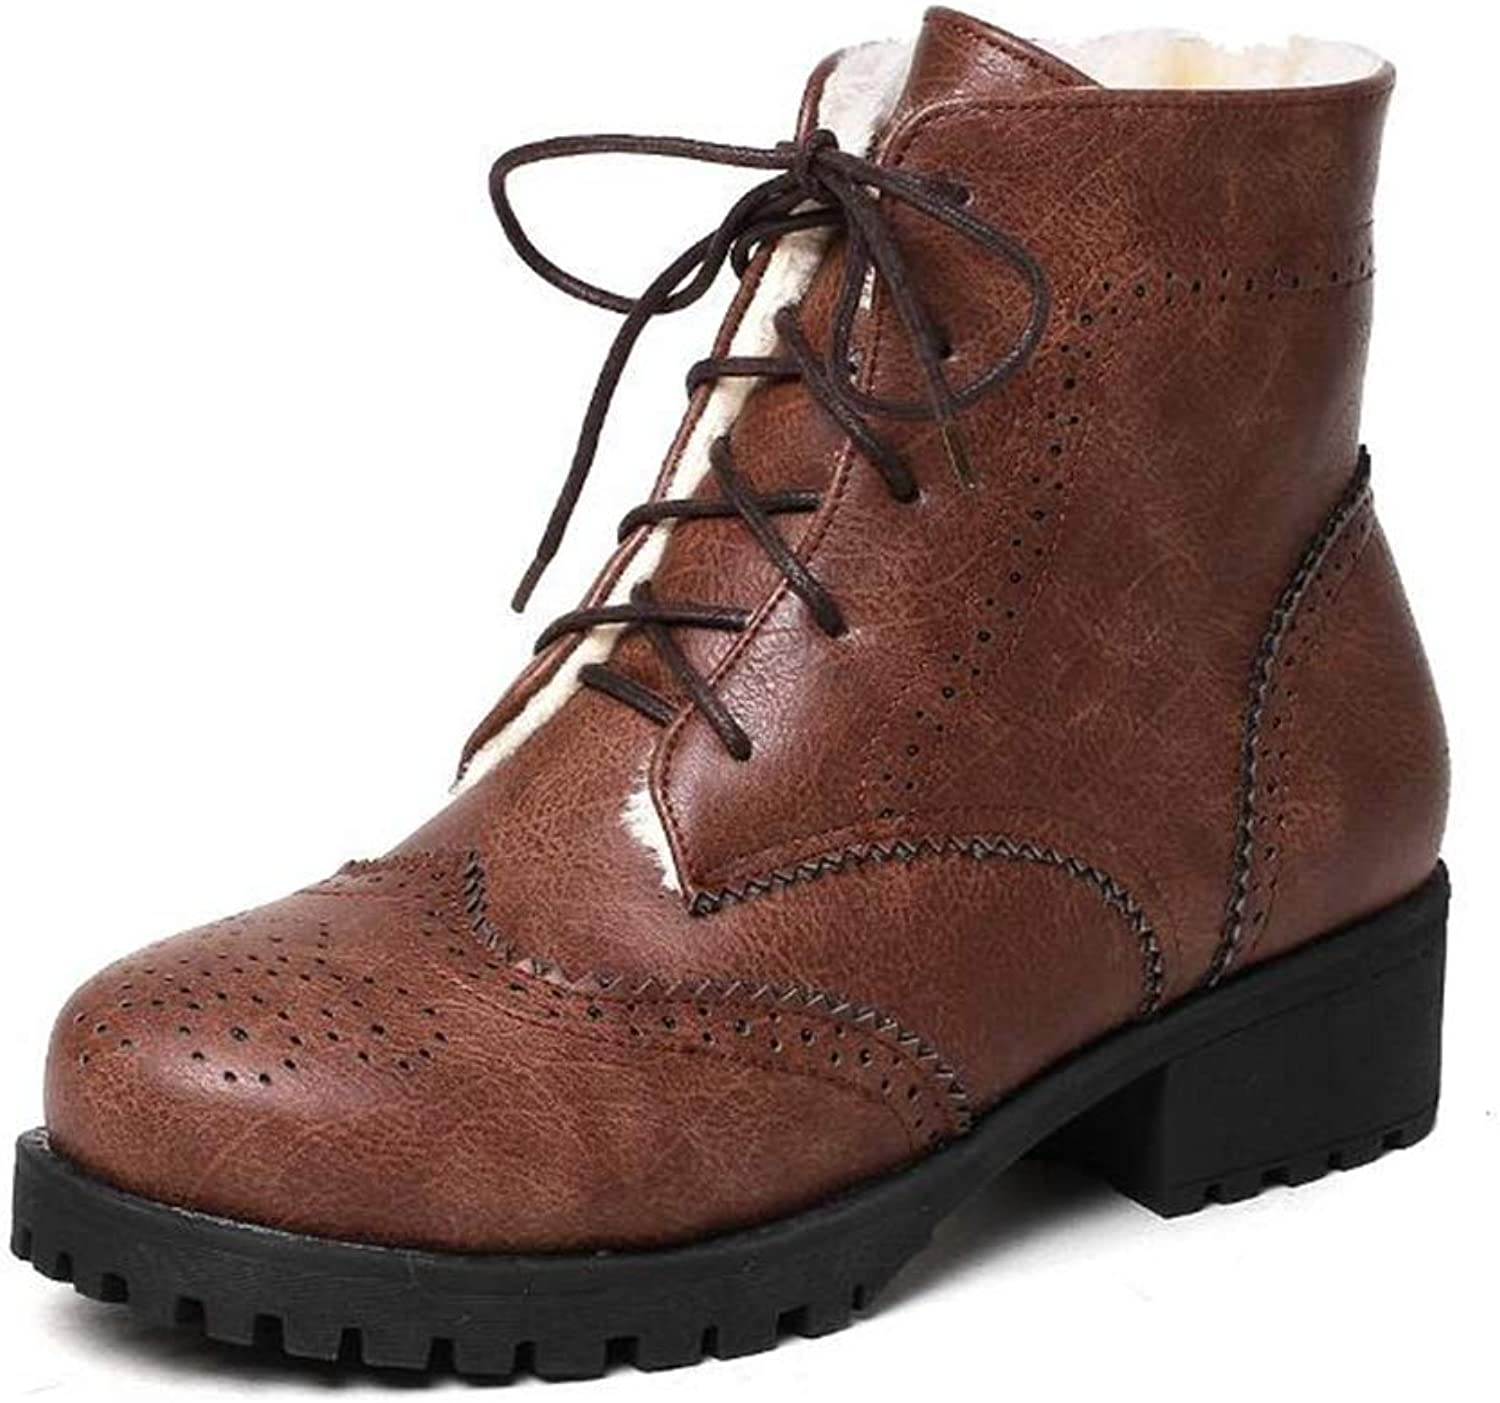 Hoxekle Winter Women European Style Ankle Boots Square Heels Round Toe Lace-Up Martin Boots Faux Leather Fashion shoes